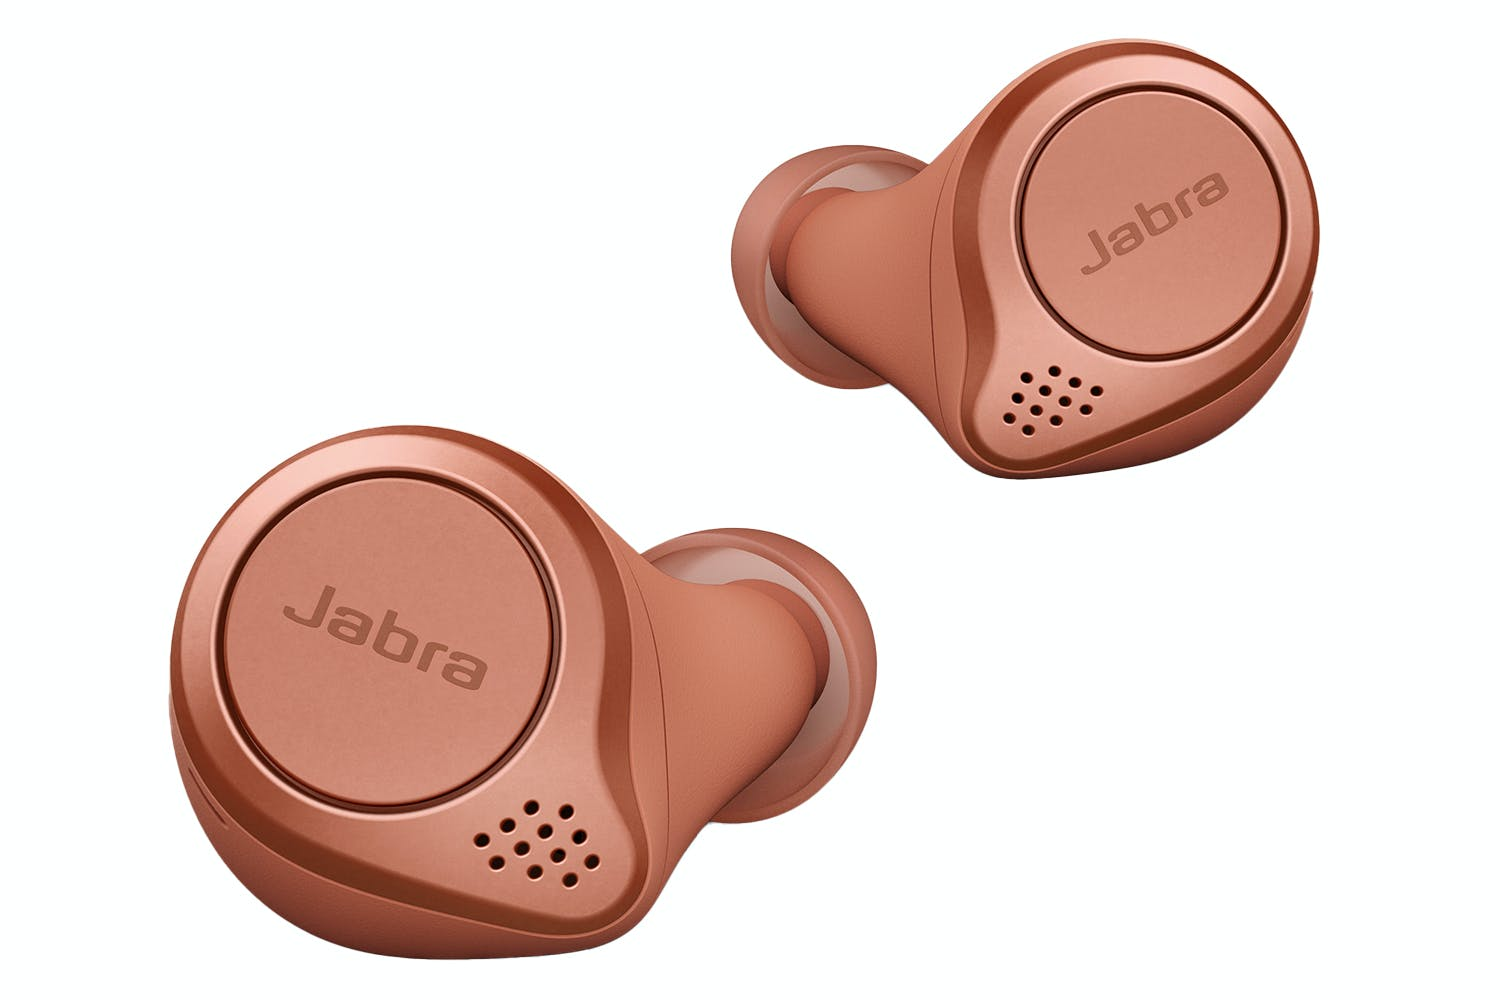 Jabra Elite Active 75t Wireless Earbuds Sienna Ireland